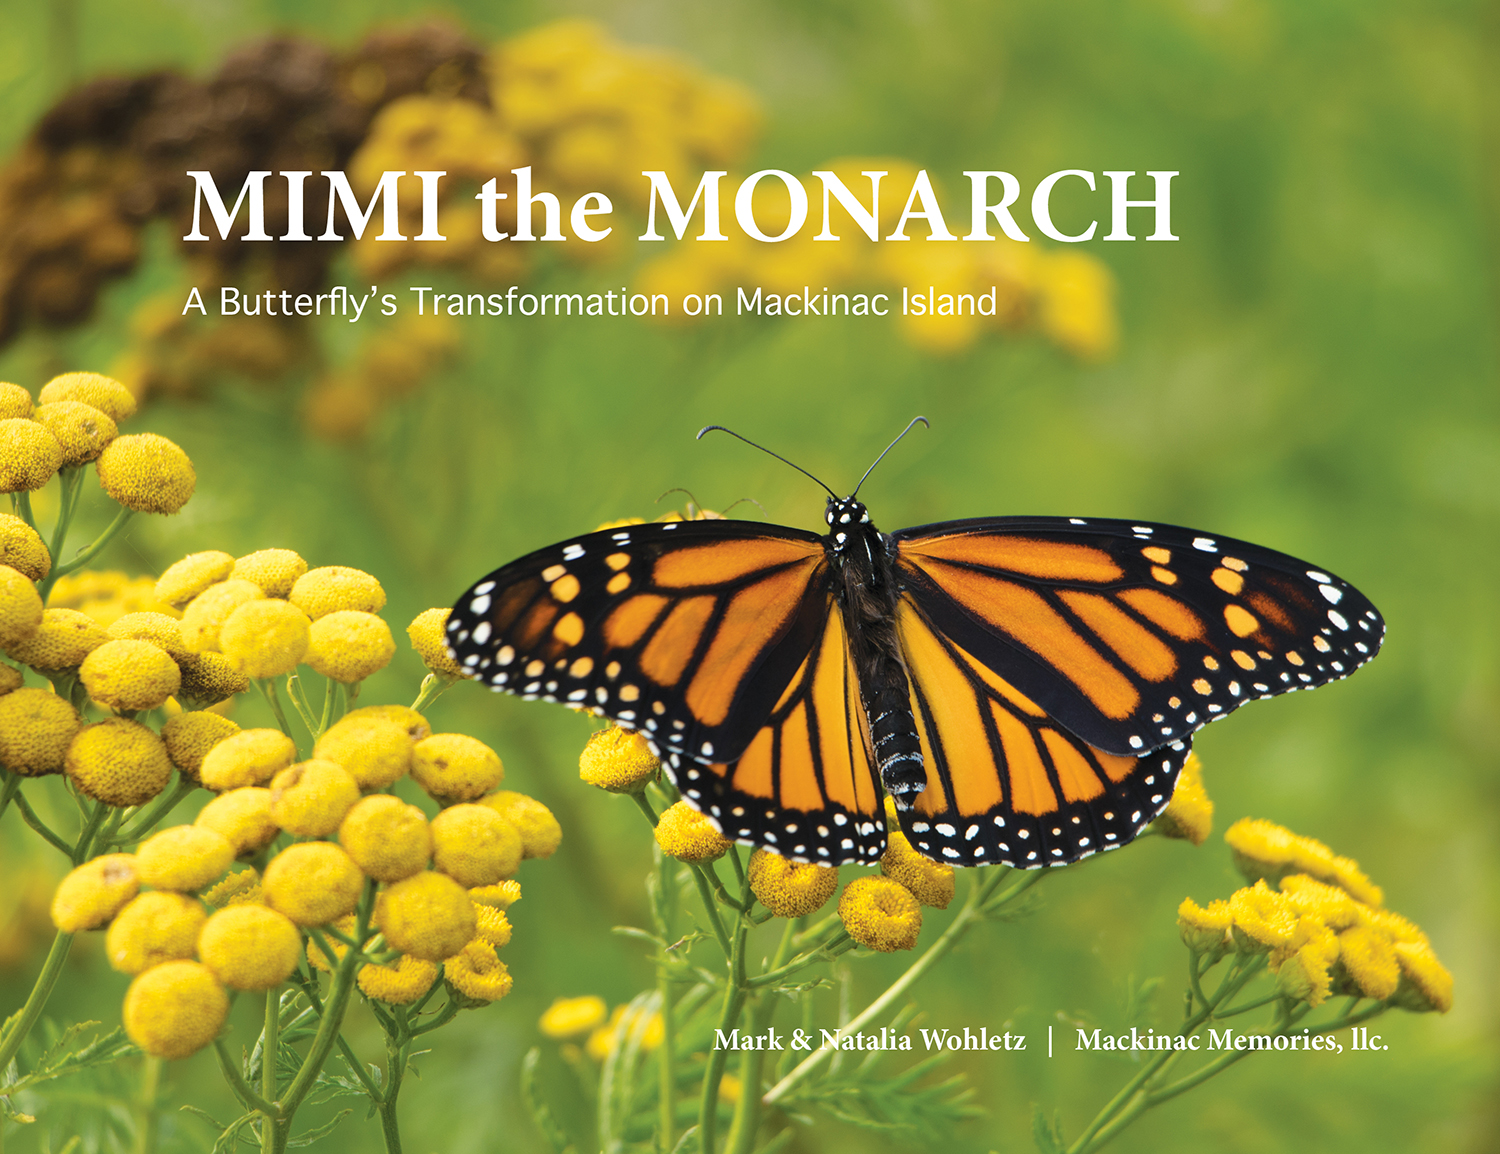 MIMI the MONARCH by Natalia & Mark